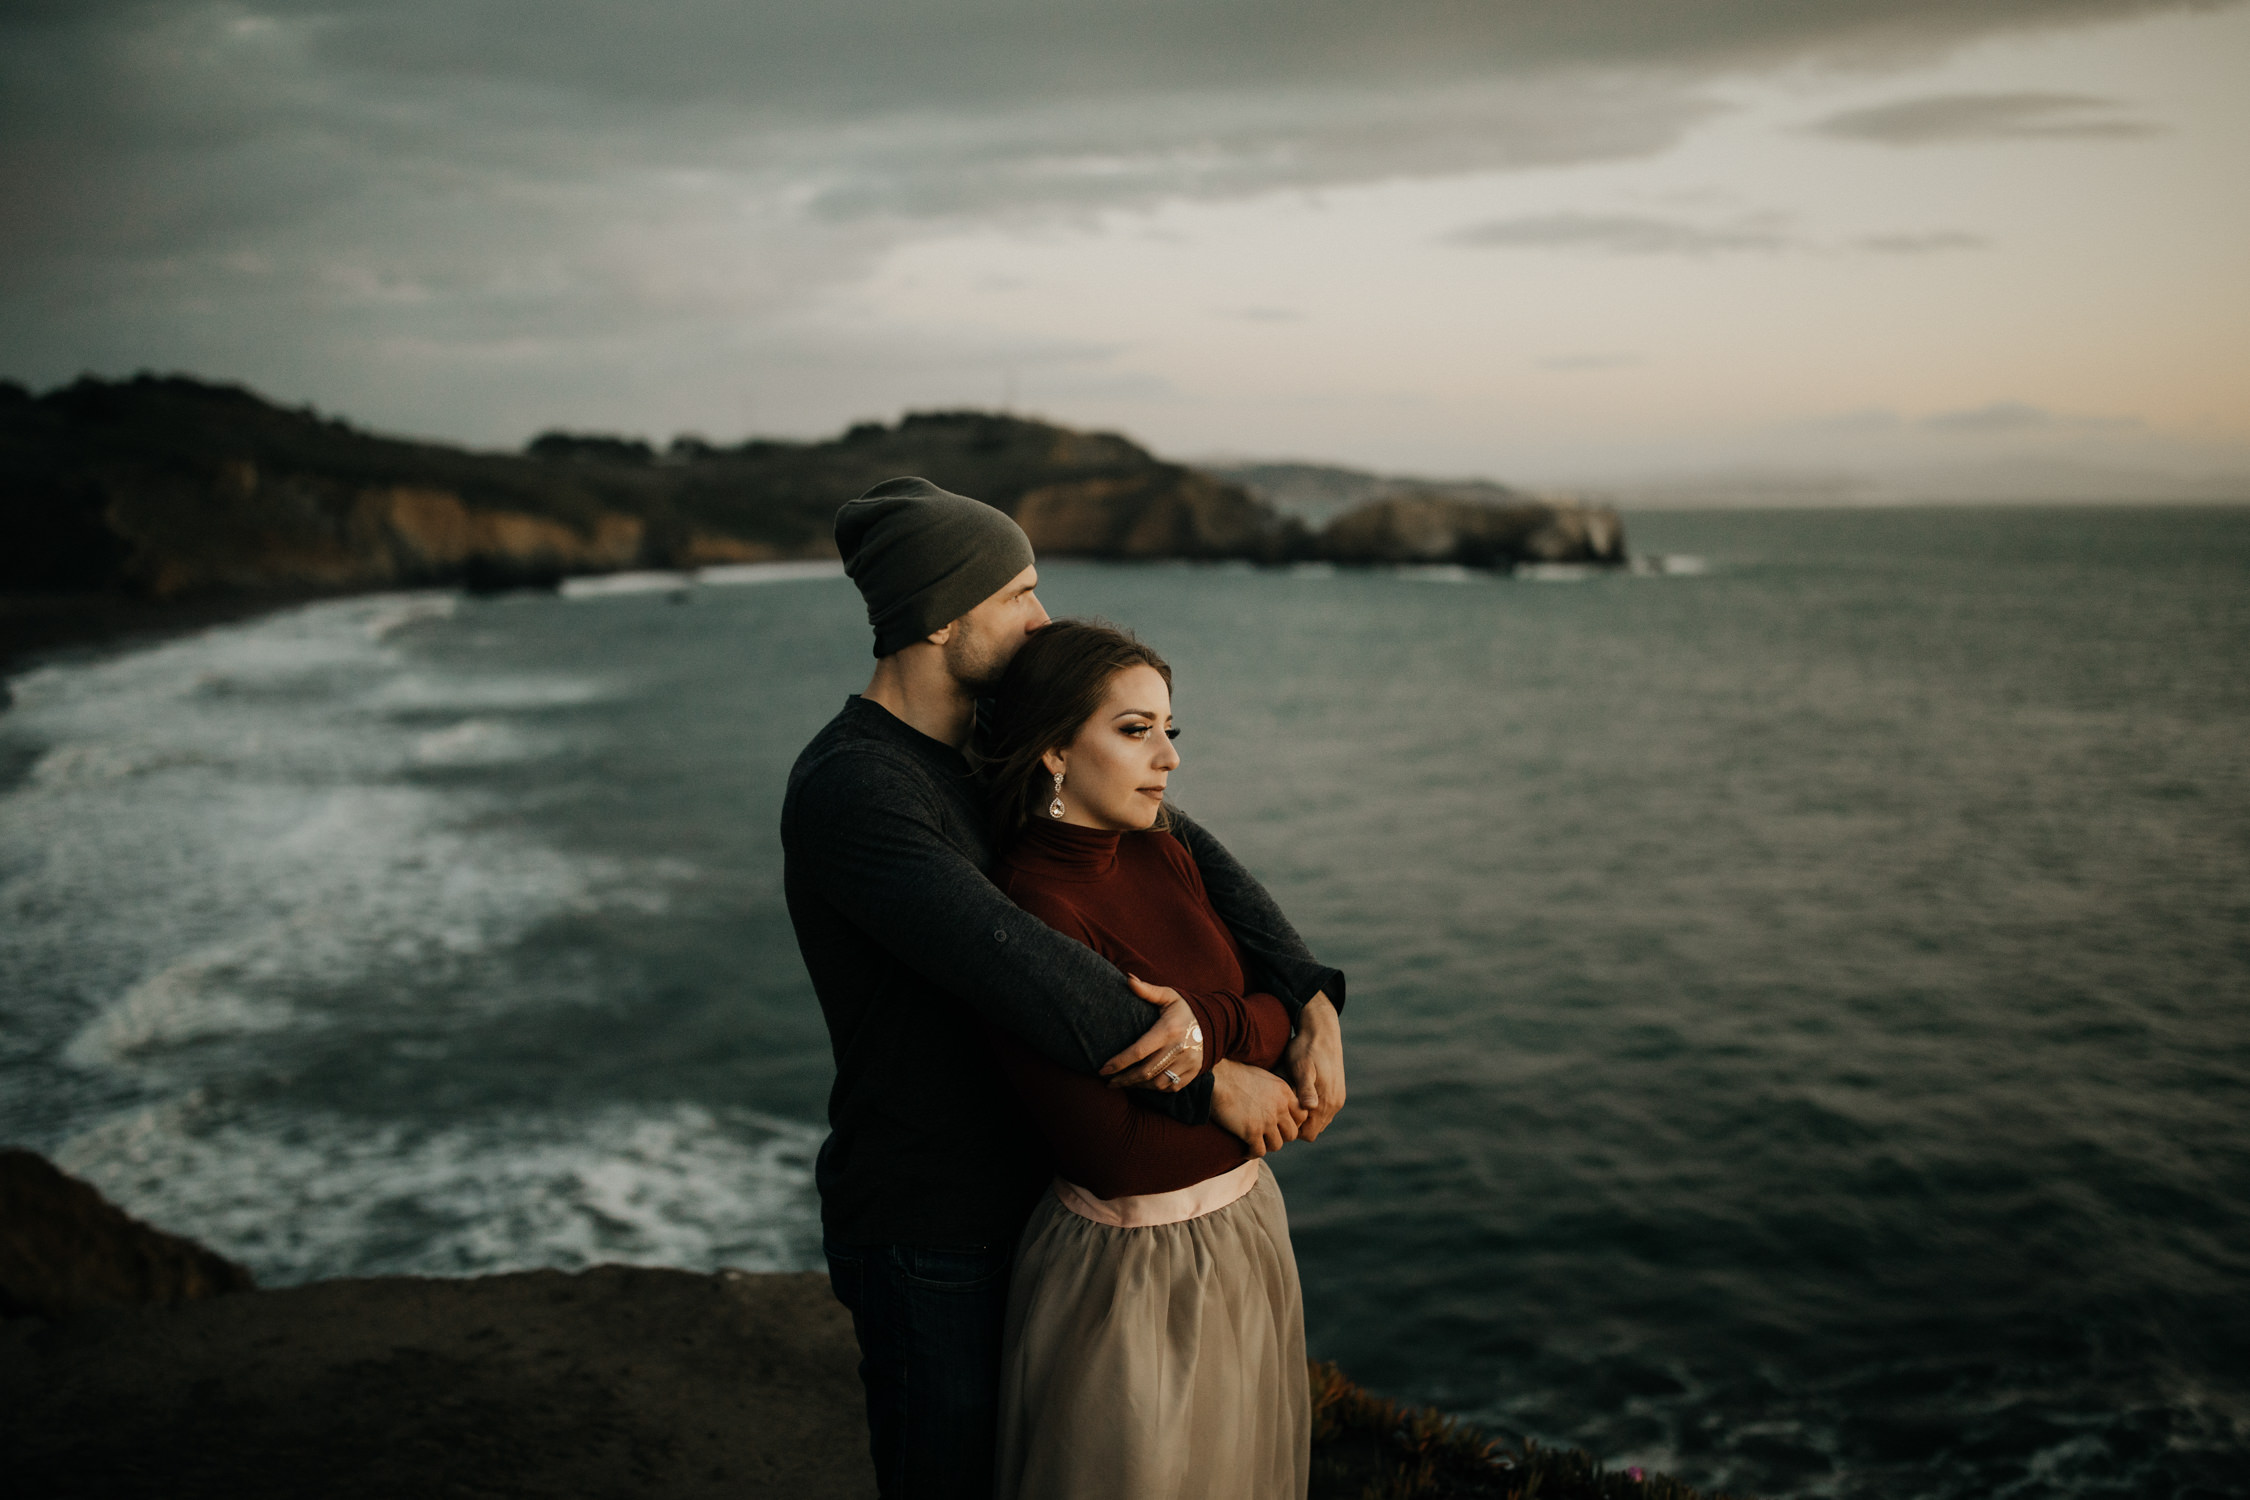 couple-intimate-engagement-session-sausalito-california-59.jpg